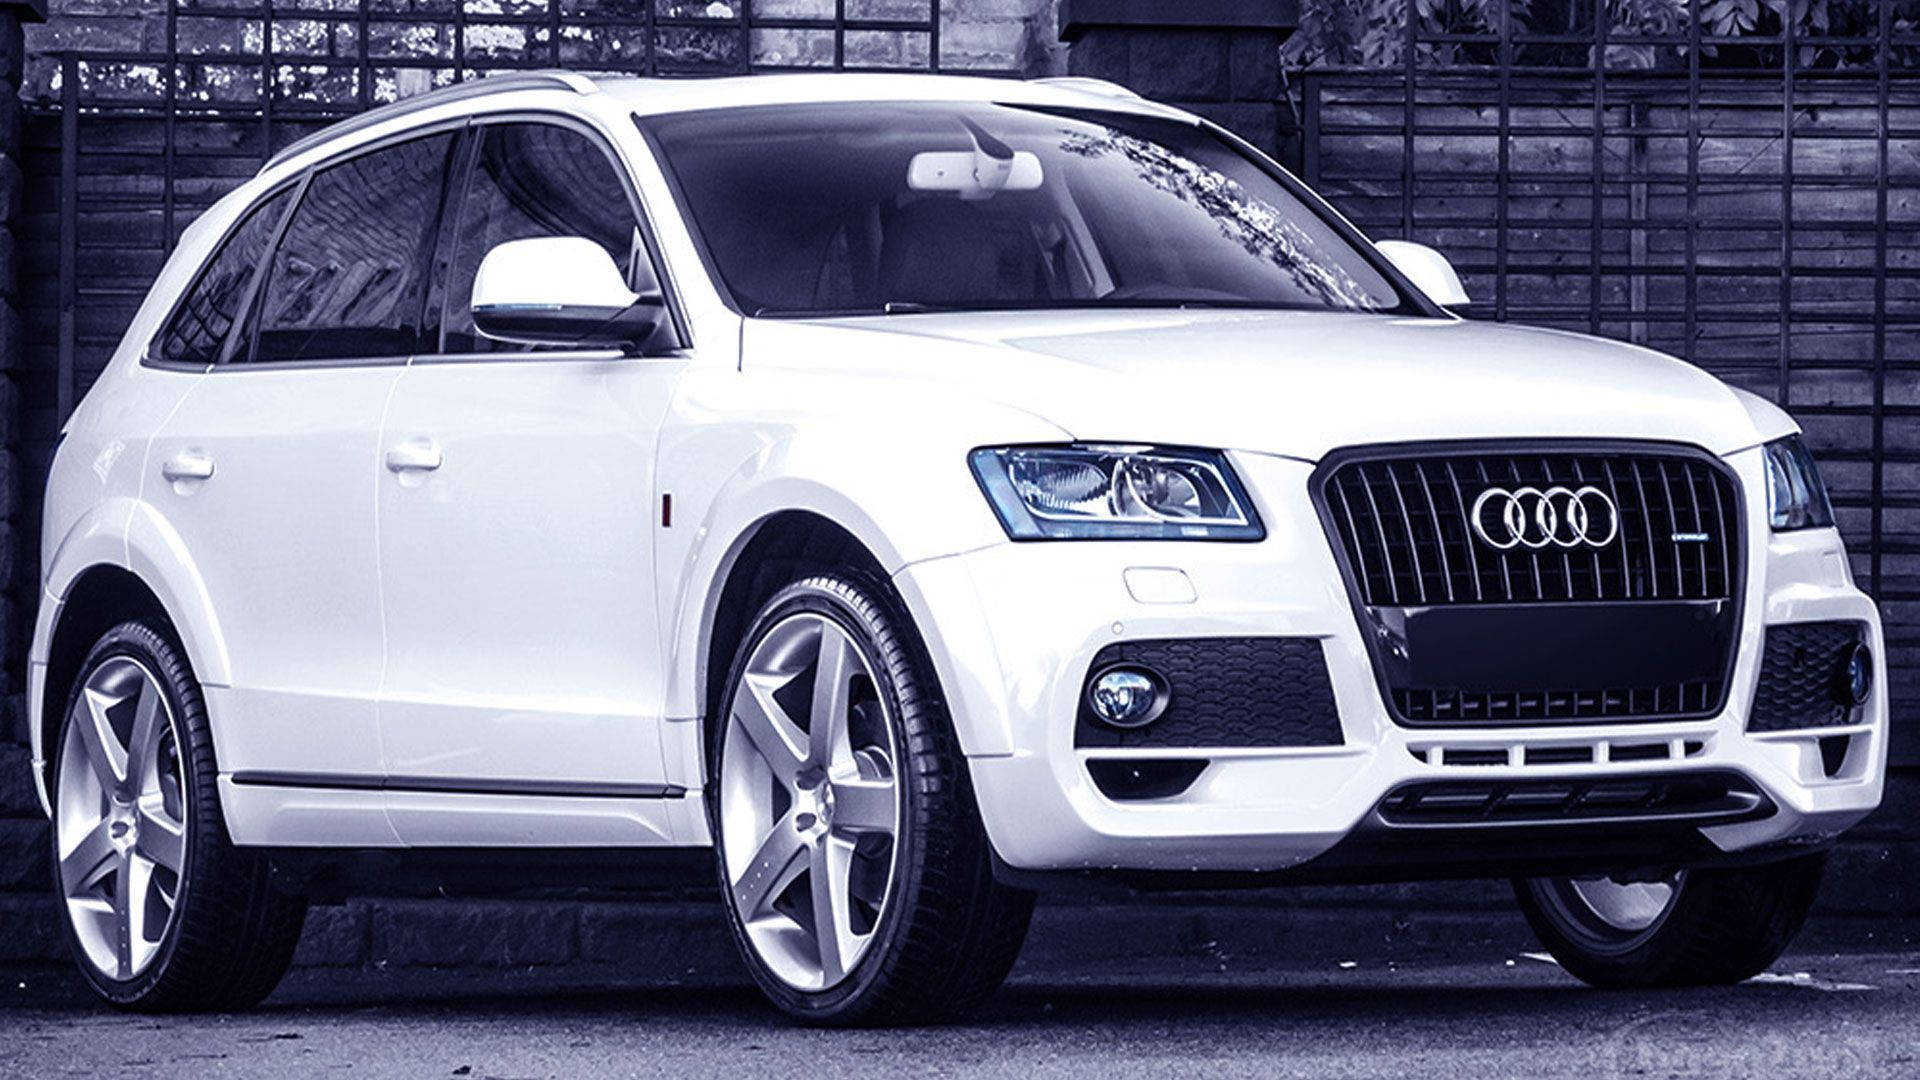 Audi Q White Price Audi Q Pinterest Cars Dream - Audi car 2015 price